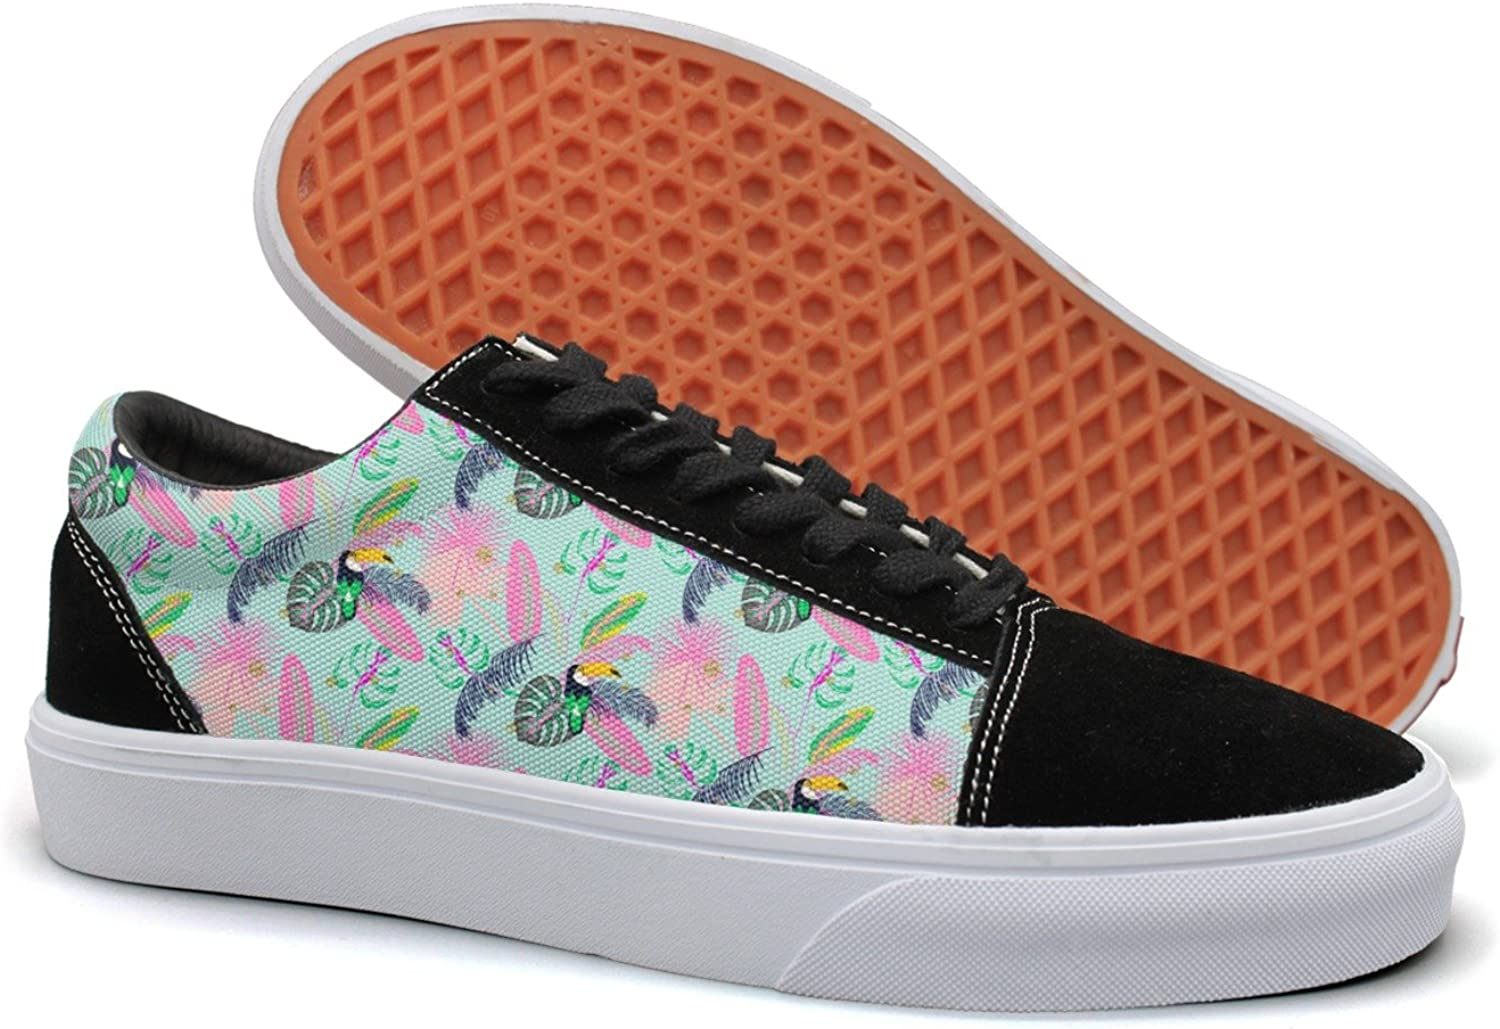 Hjkggd fgfds Casual Tropic Plant Leaves and Toucan Bird Beautiful Women Canvas Sneakers shoes